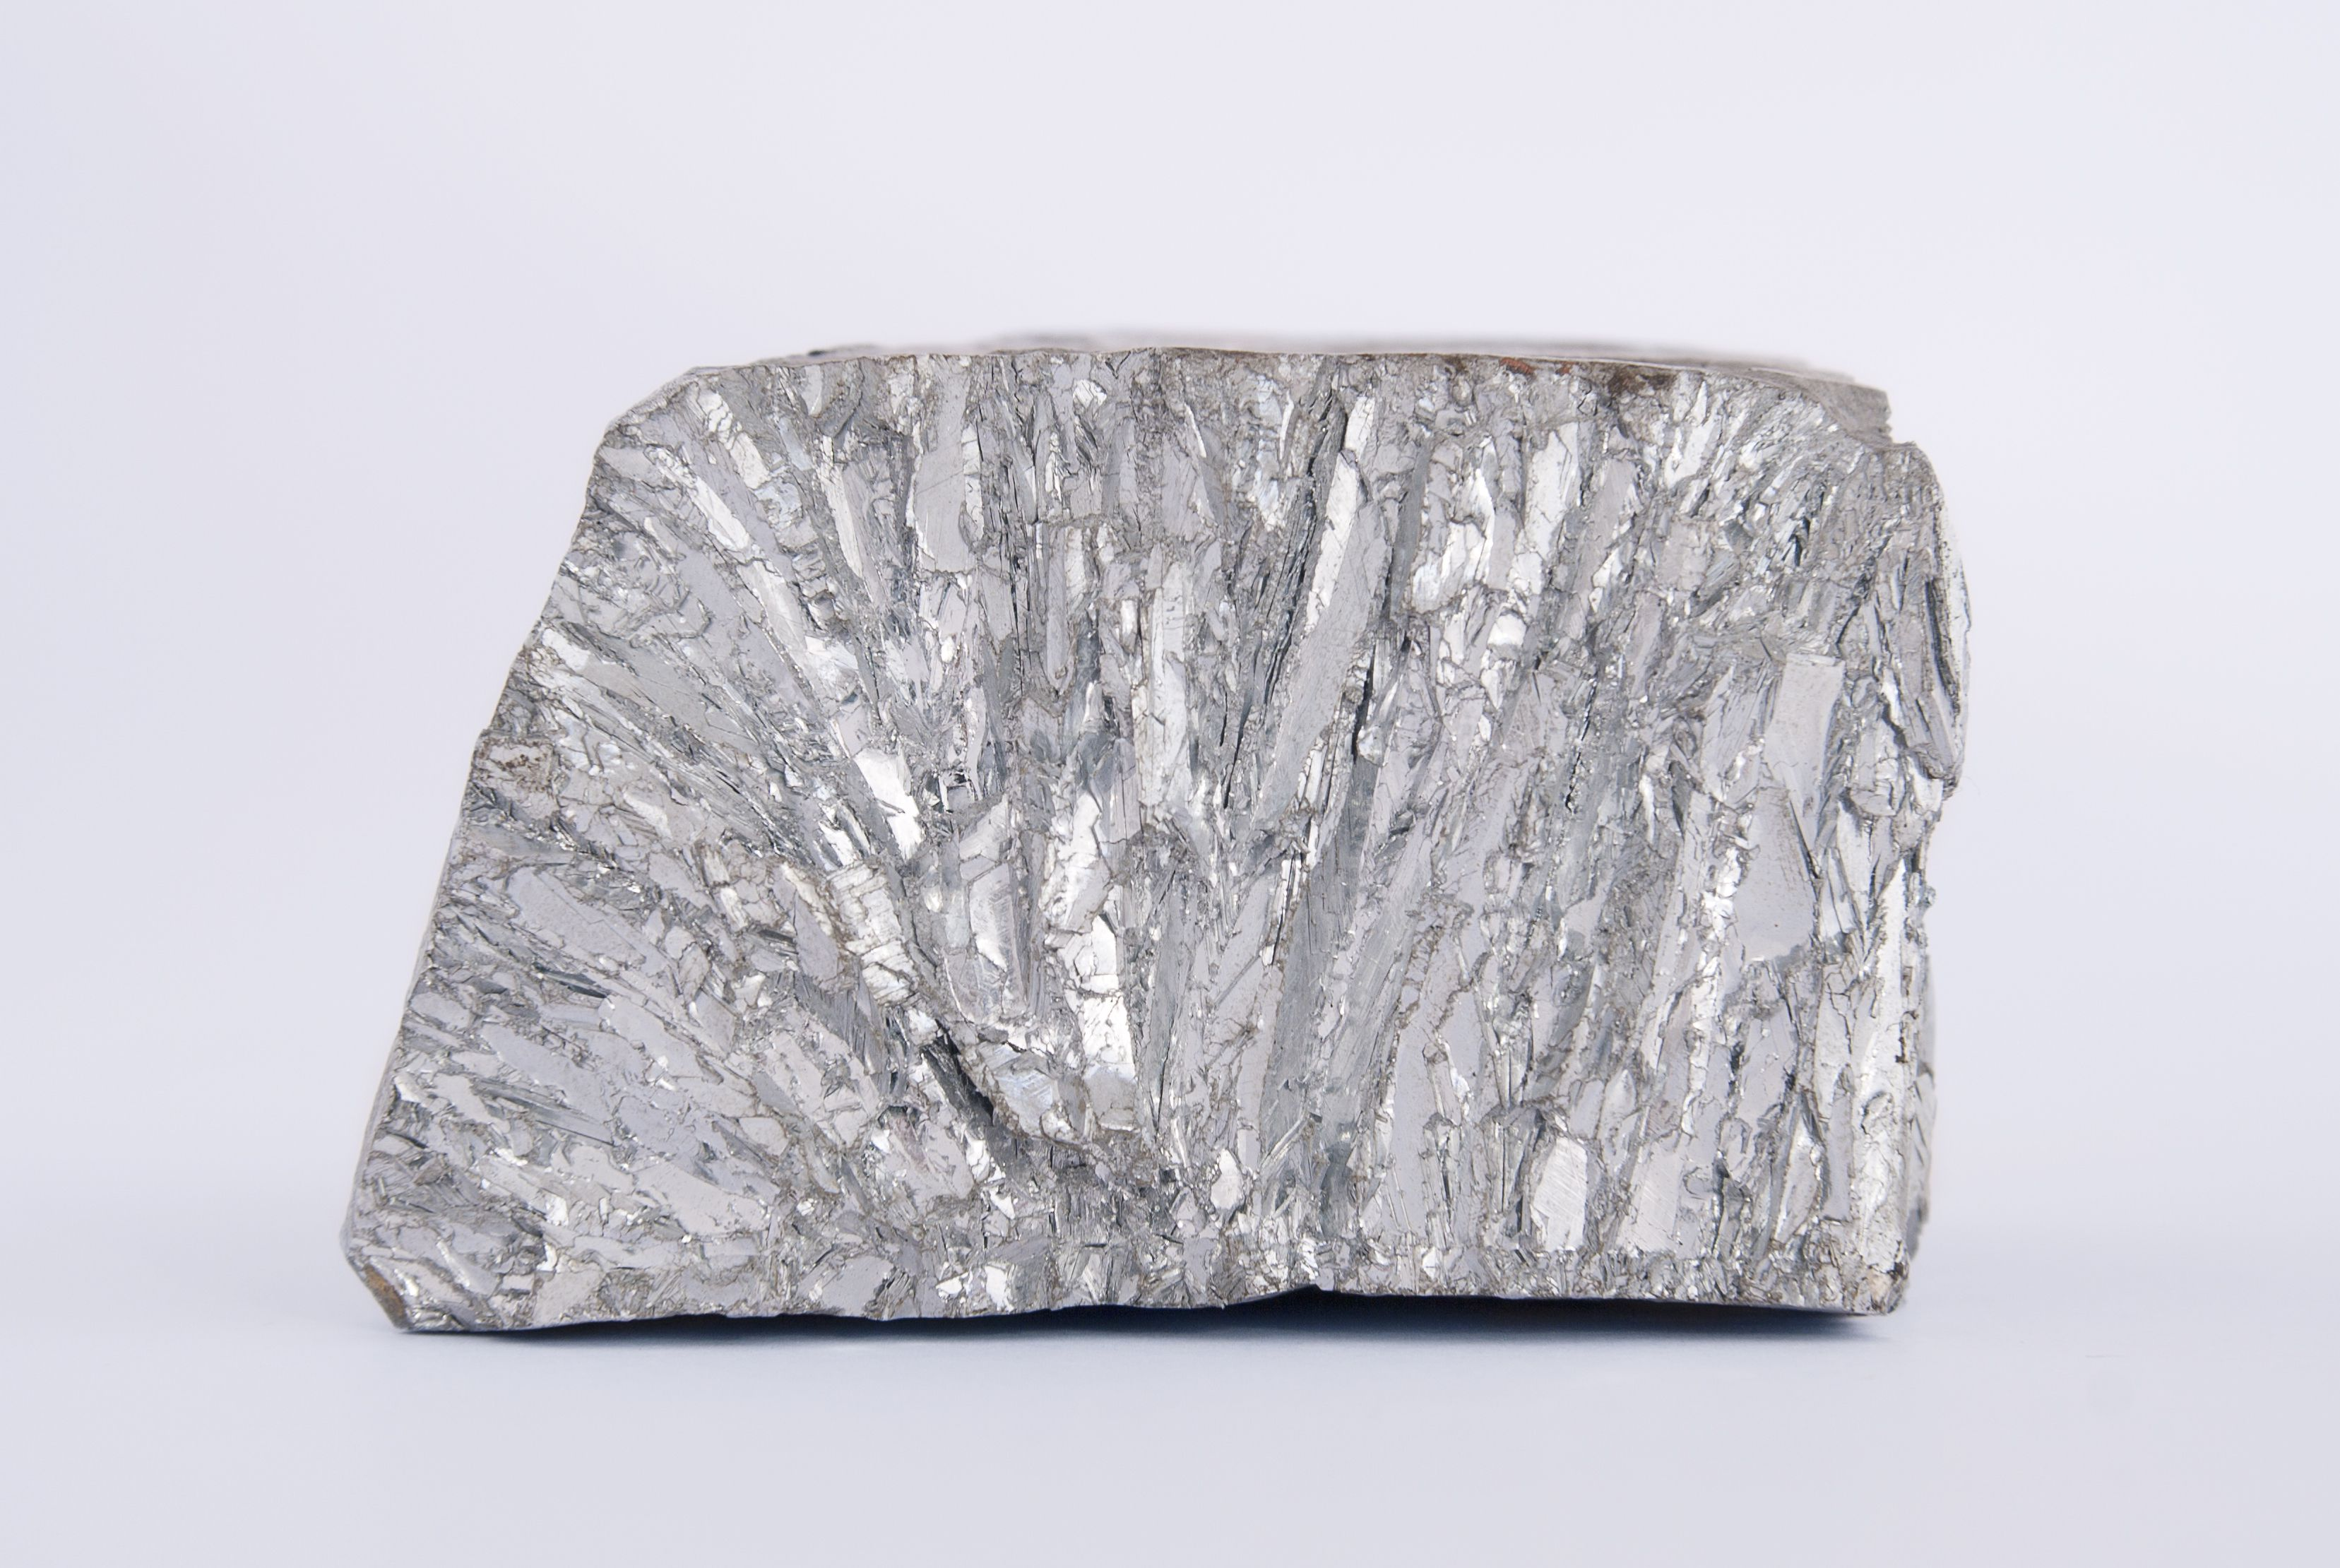 Zinc is one of the transition metals.